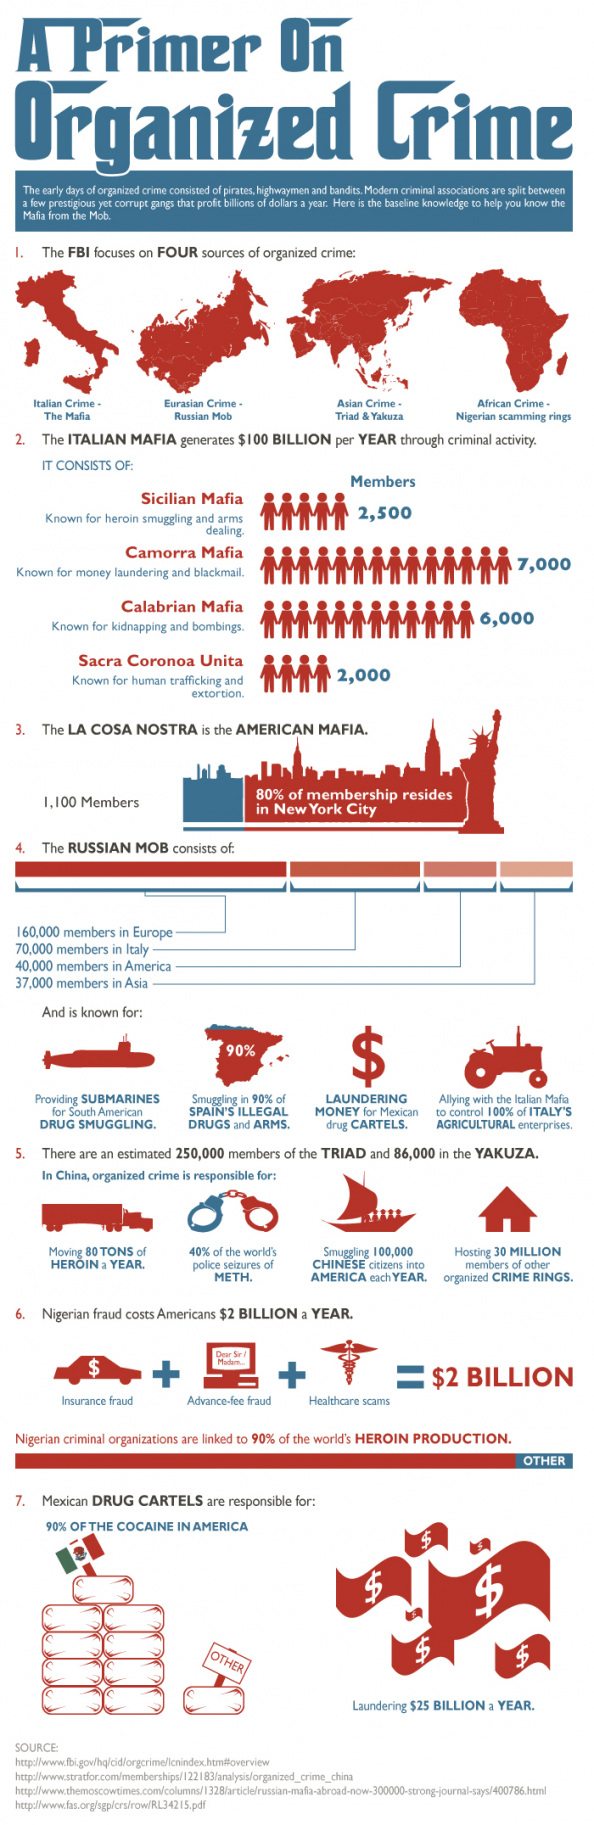 Organized Crime Infographic